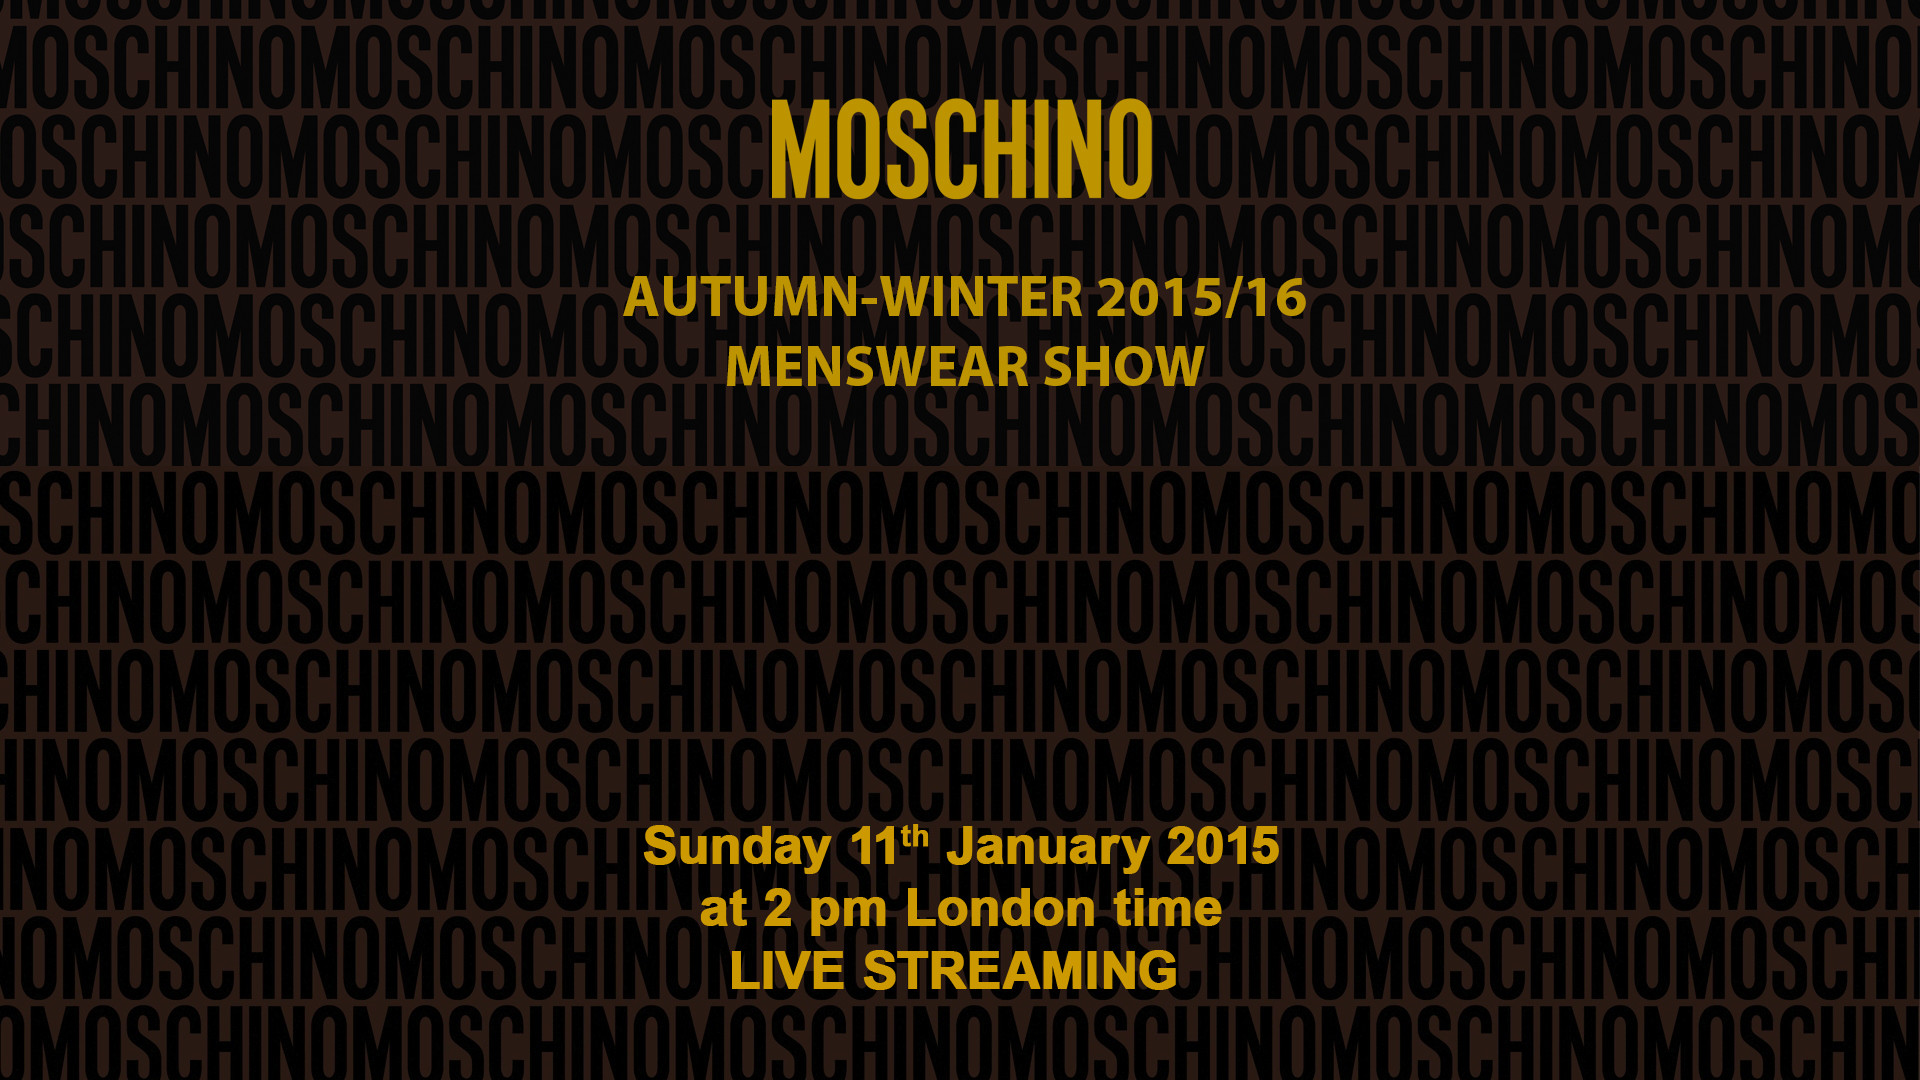 Moschino Autumn Winter 2015/16 Men's Fashion Show Live Streaming – 11th January 2 Pm London